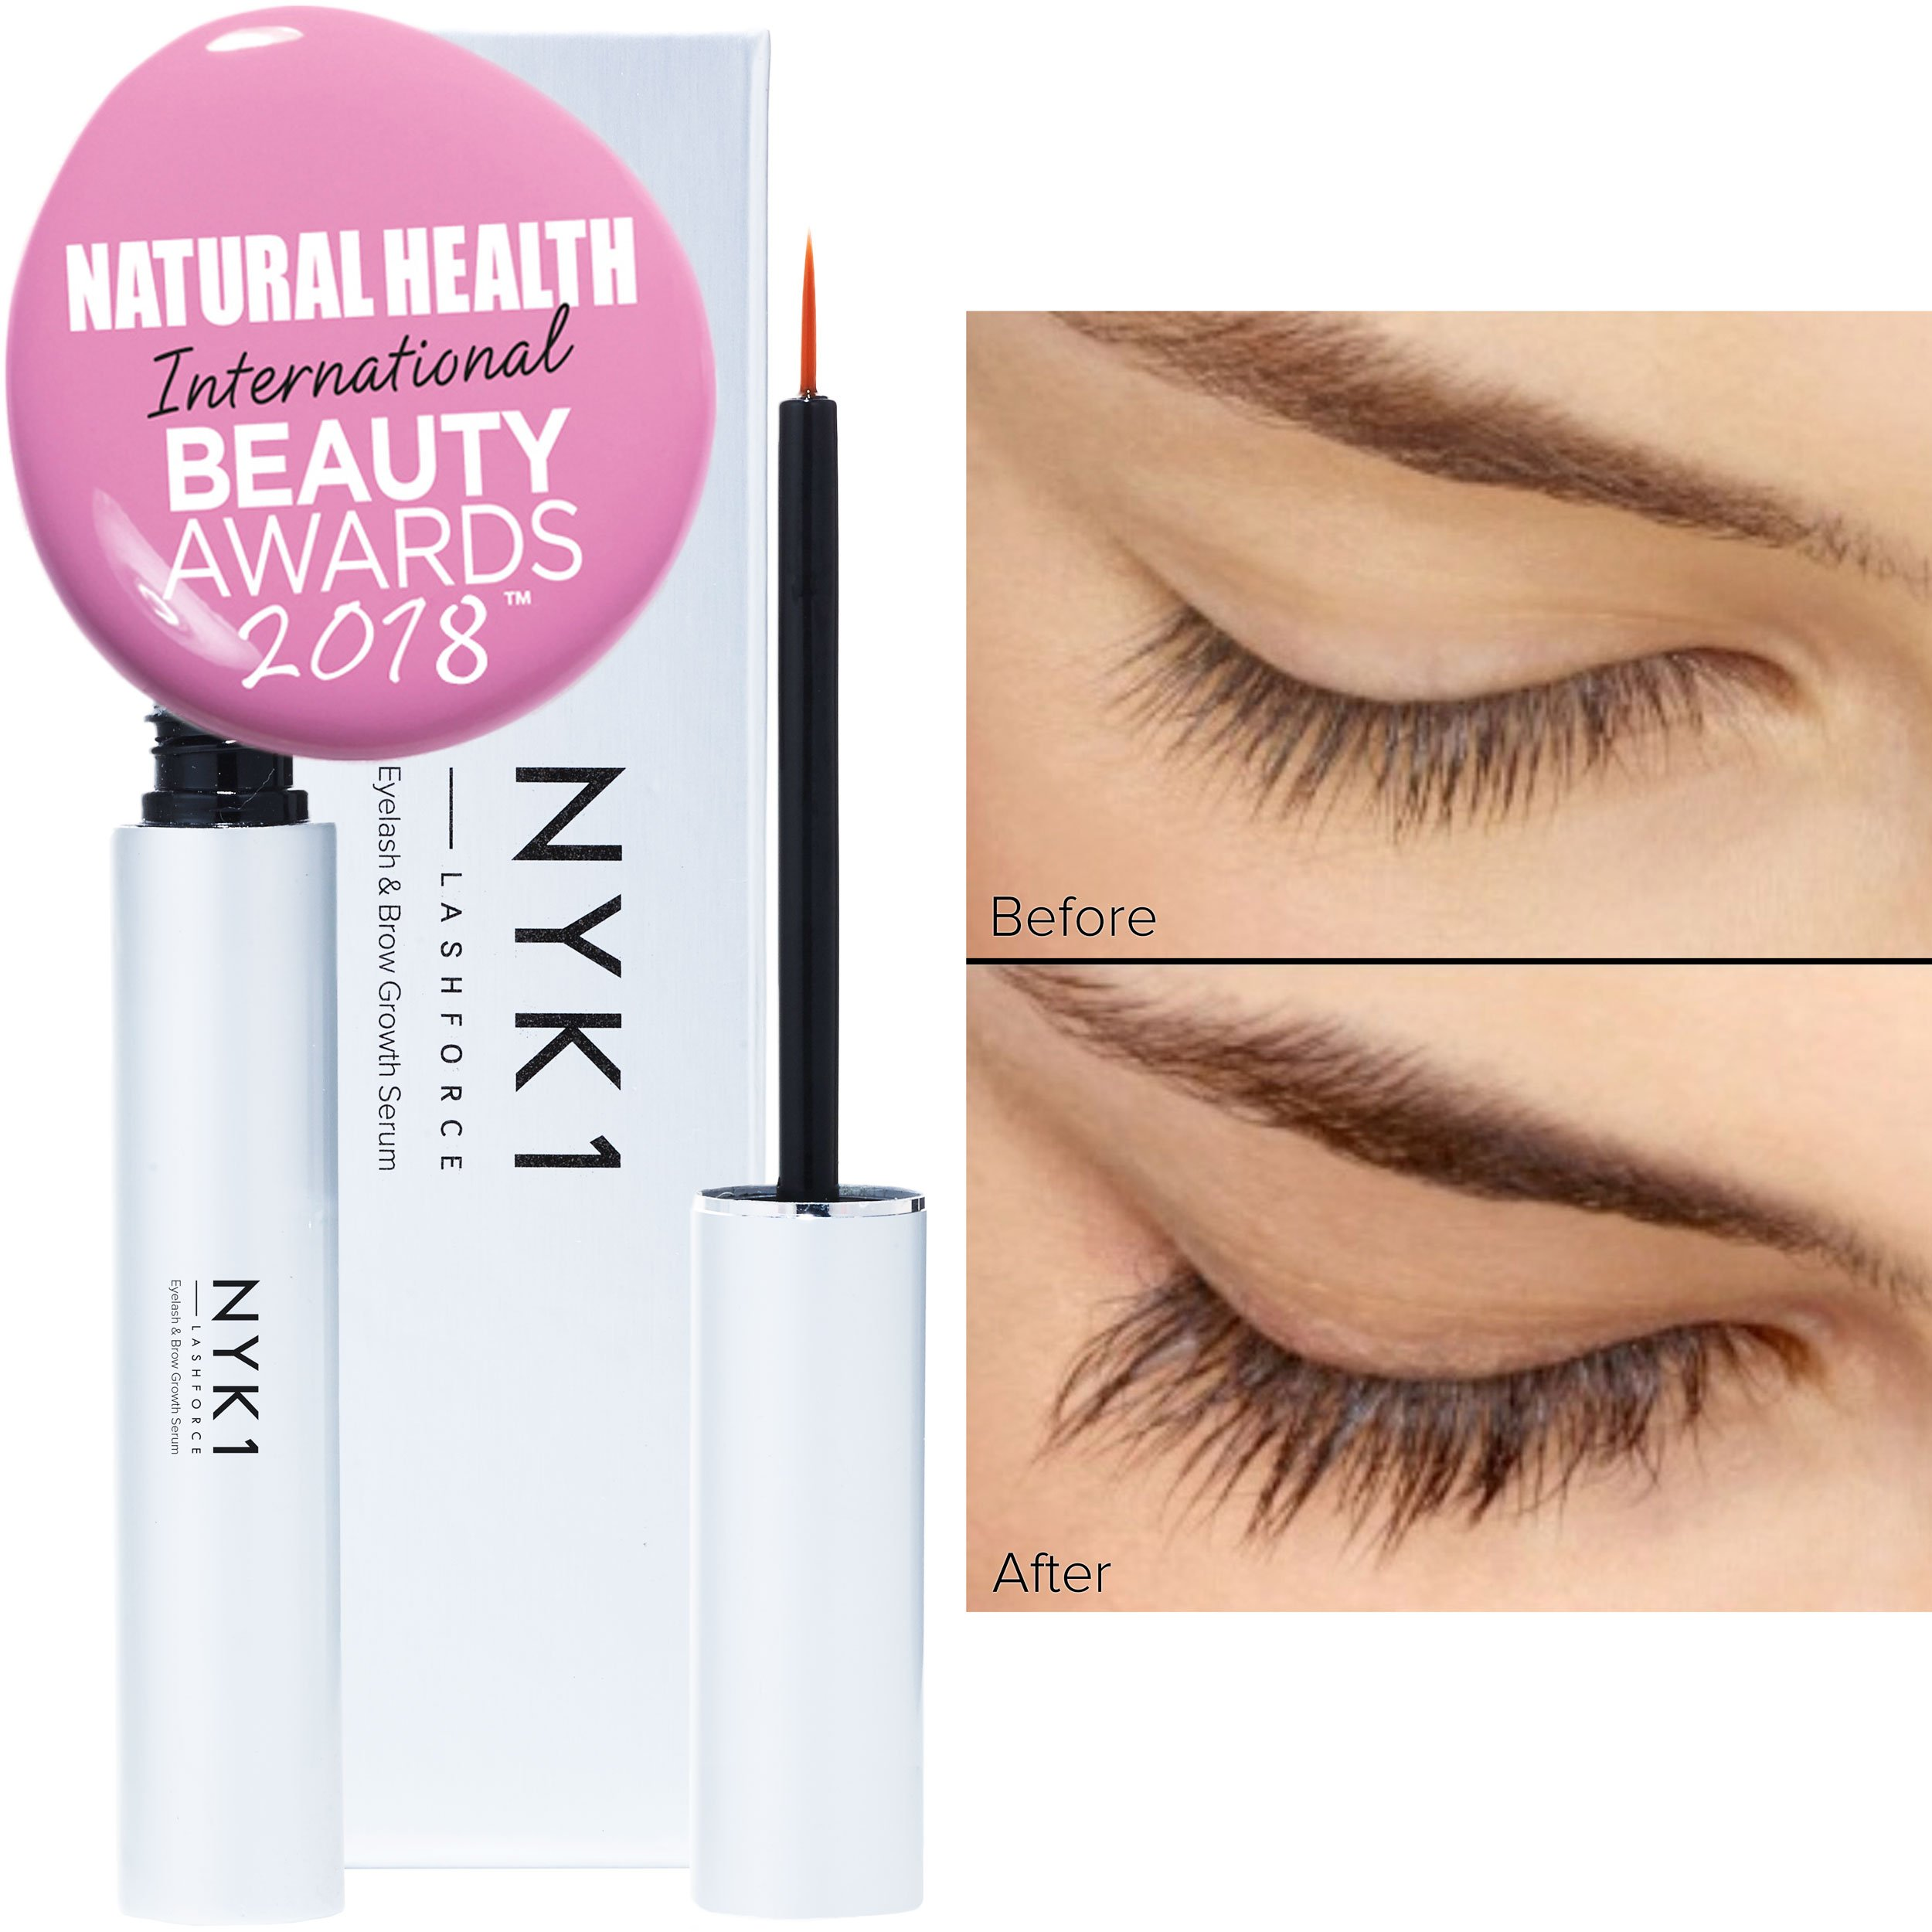 NYK1 Lash Force Eyelash Growth Serum - Grow Long Eyelashes and Thicker Eyebrows - Rapid Lash Growth Serum and Eyebrow Enhancer - 8ml by NYK1